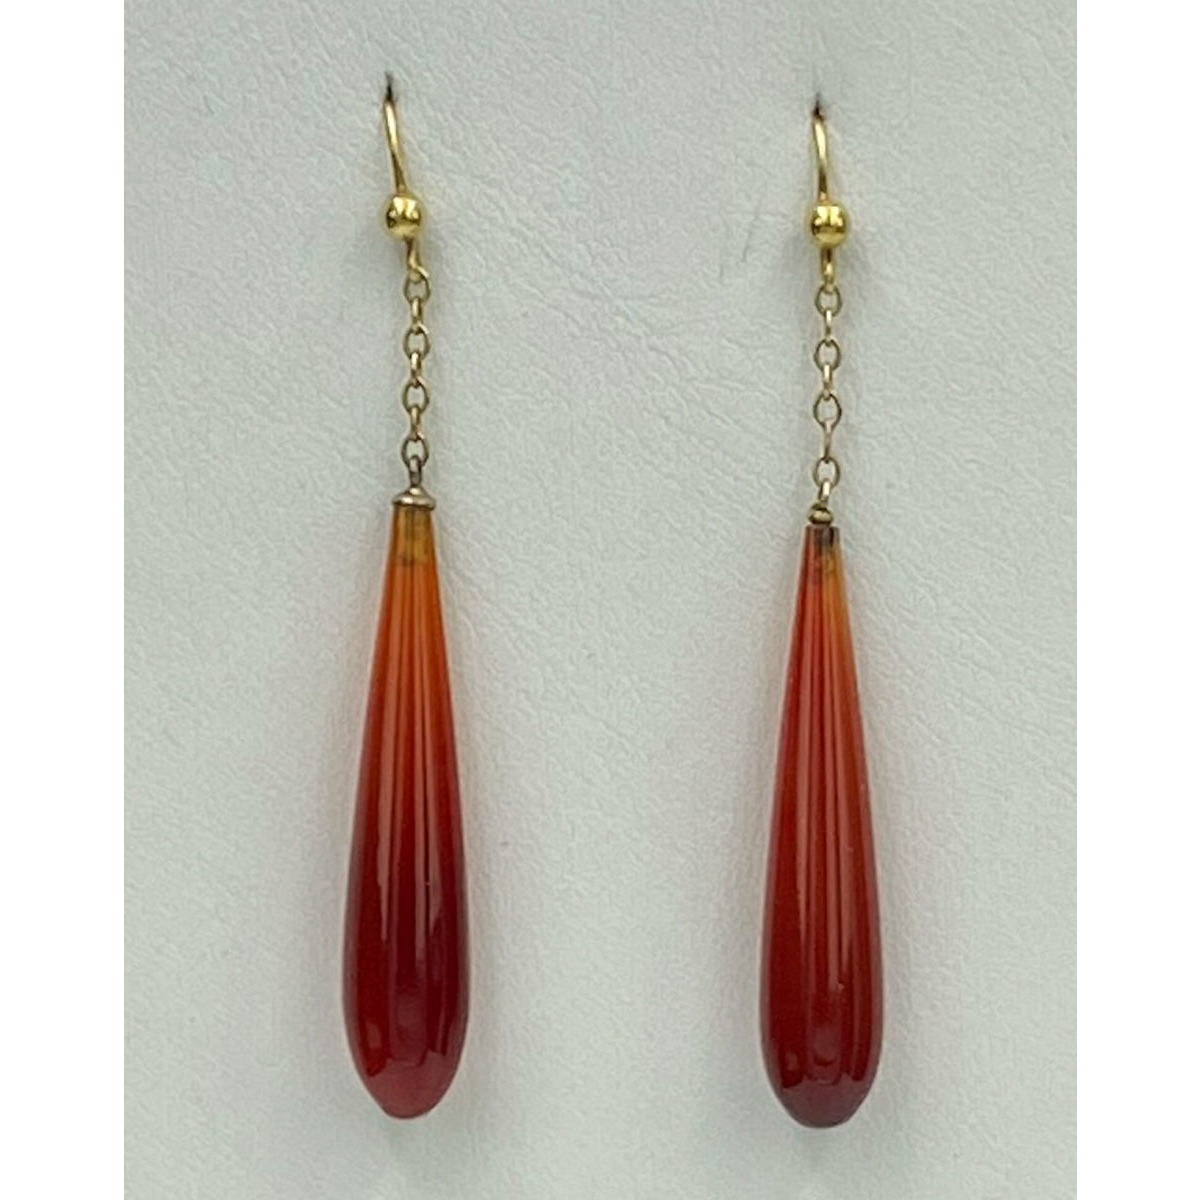 Carnelian Pendant Earrings, 15kt Gold Wires, Antique English